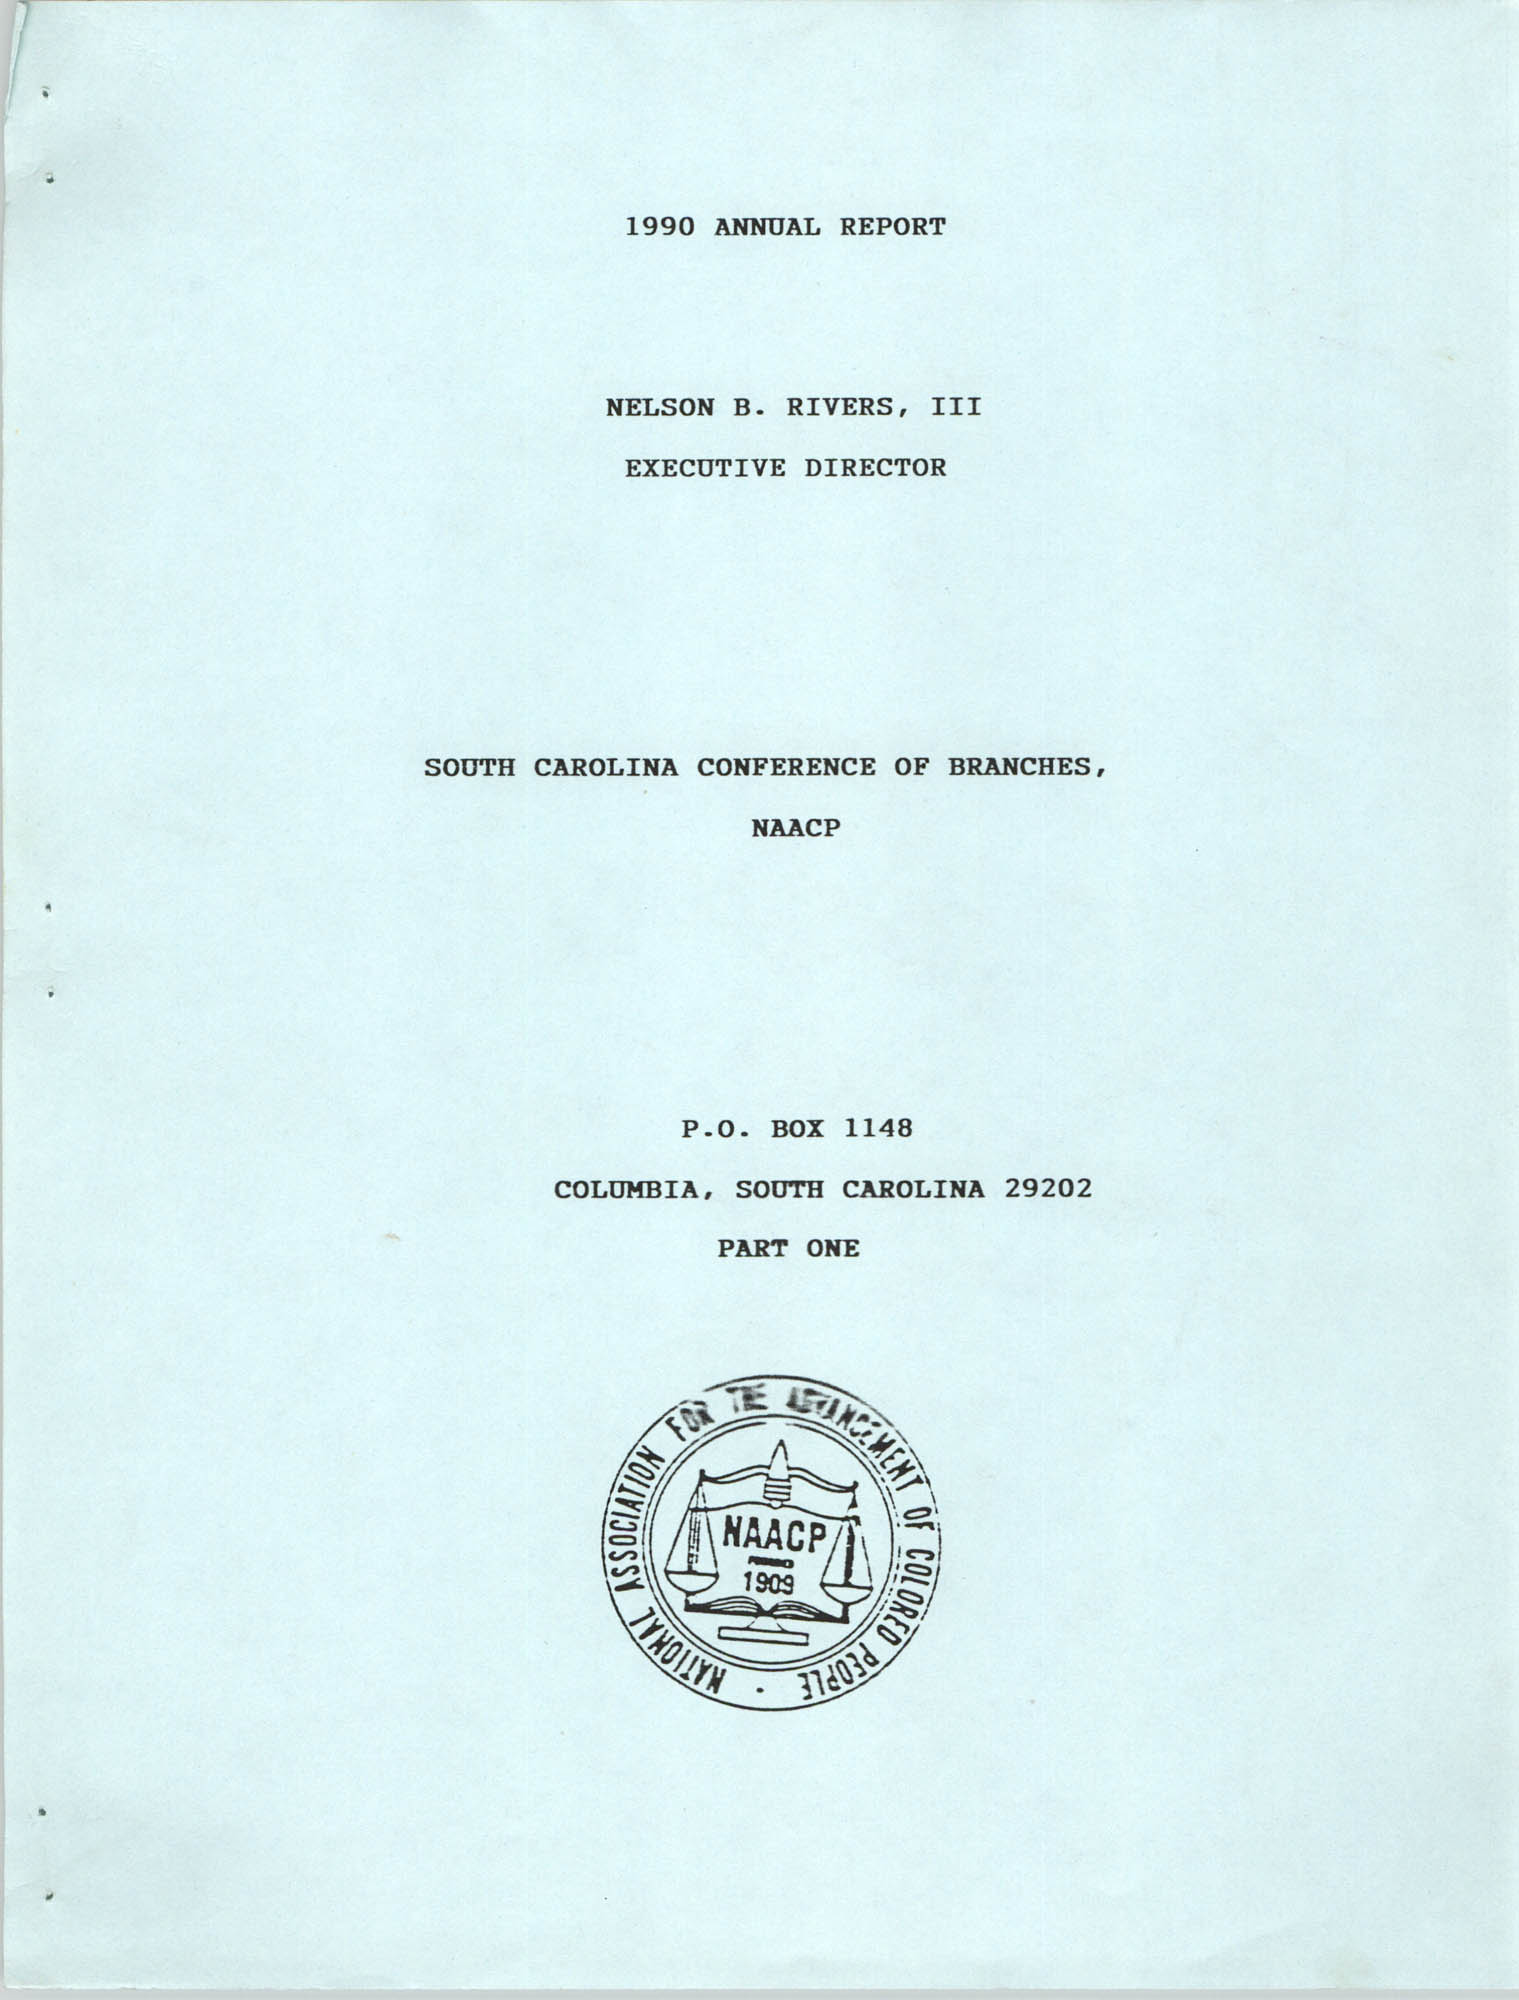 South Carolina Conference of Branches of the NAACP, 1990 Annual Report, Part One